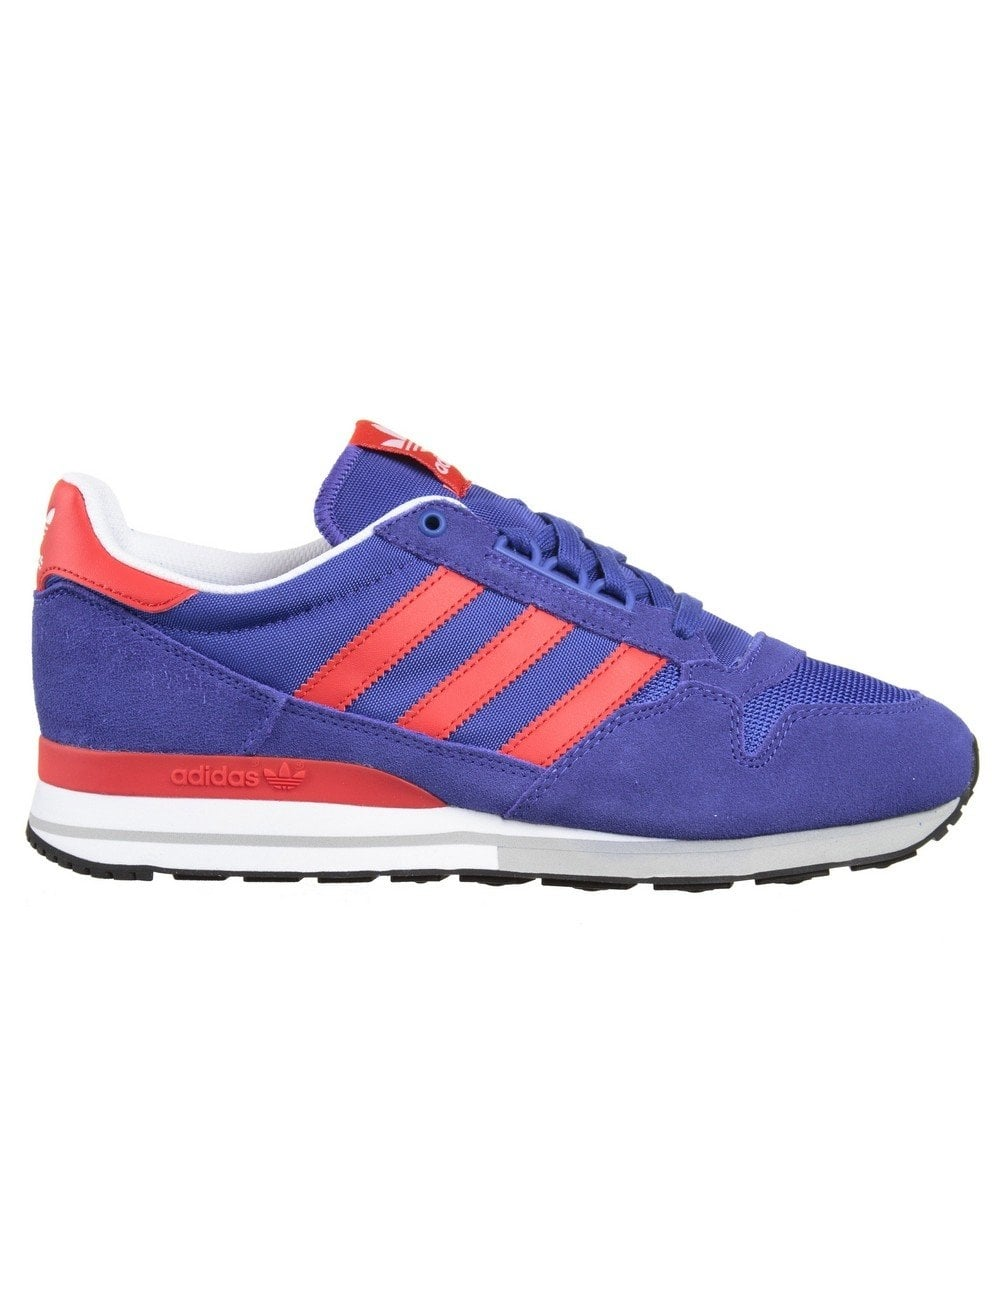 adidas originals zx 500 trainers